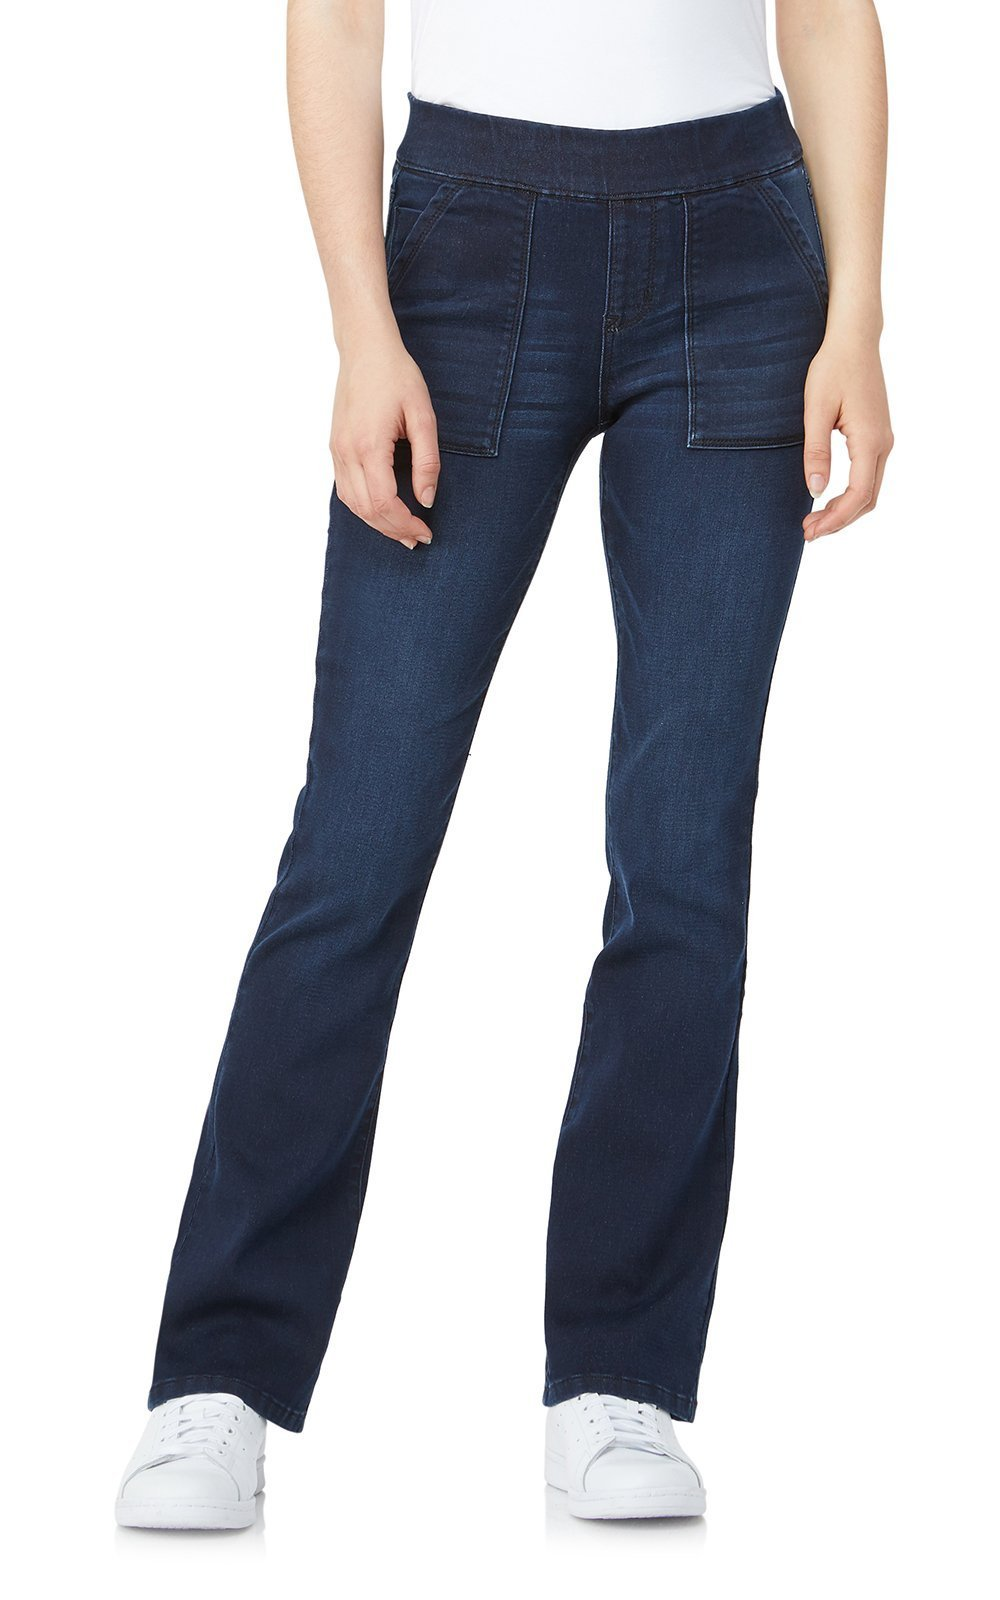 WallFlower Women's Juniors Elastic Waistband Pull On Bootcut Jeans in Moody Blue, Small